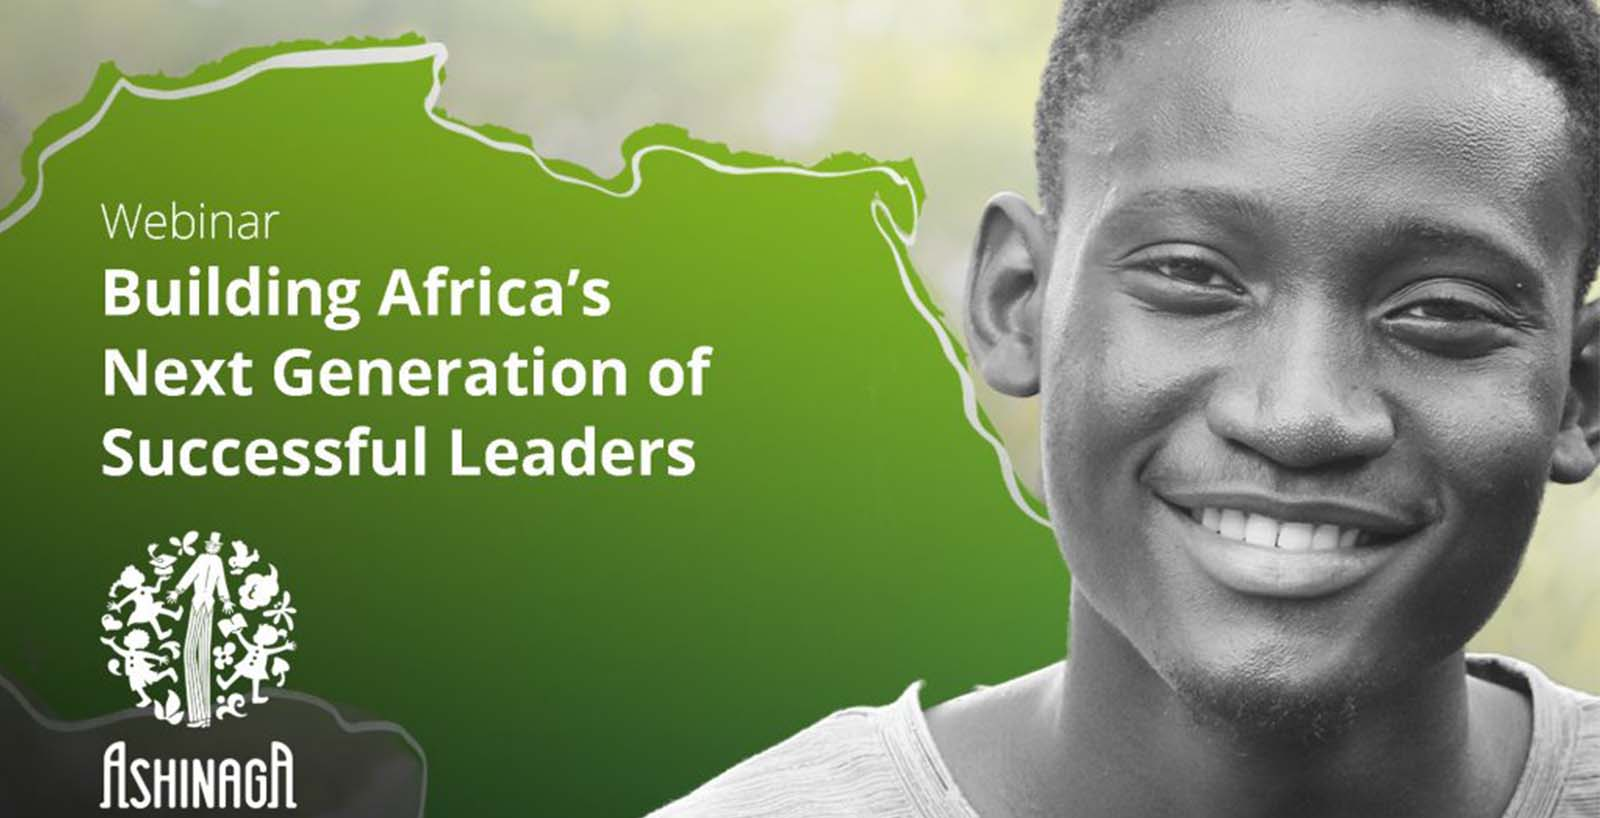 Building Africa's Next Generation of Successful Leaders